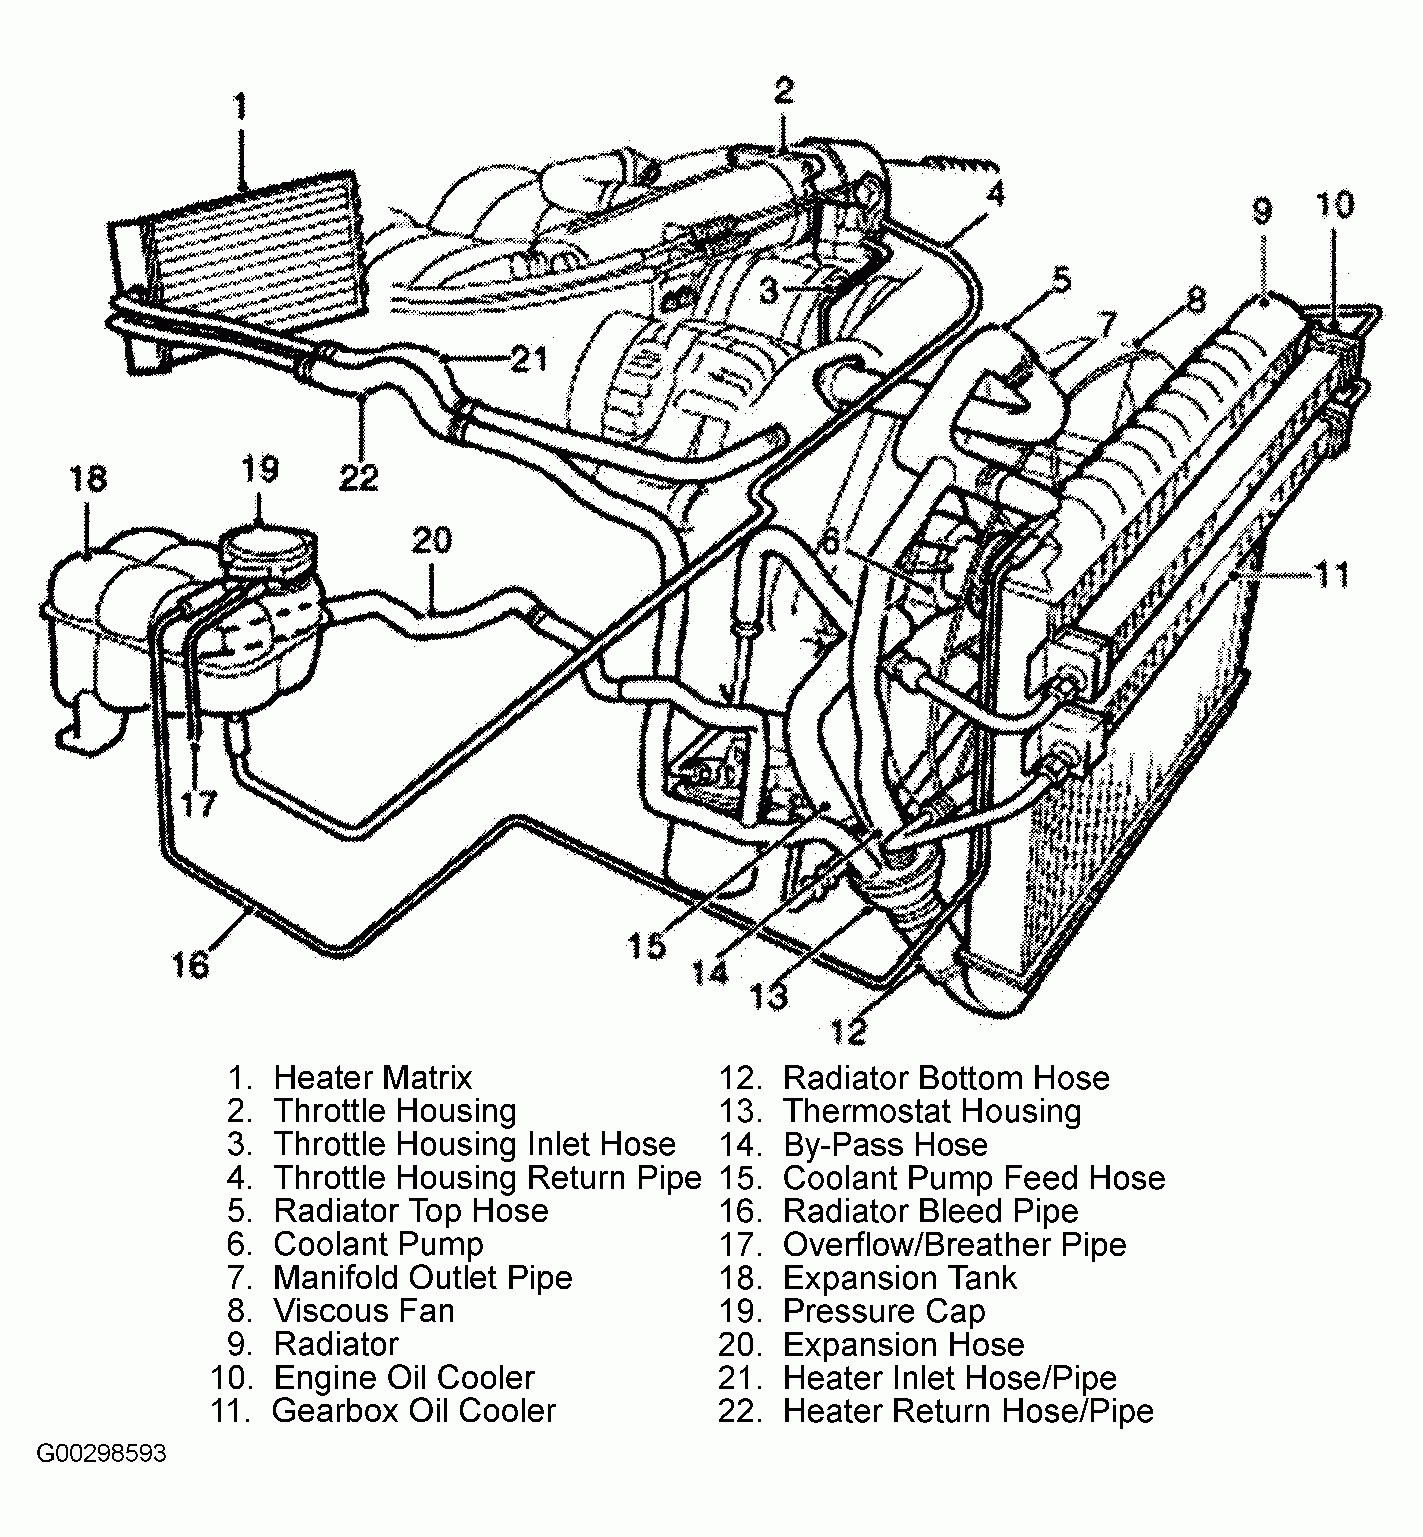 2003 Lincoln Ls V8 Engine Diagram How To Install Replace Spark Plugs 4 6l Chevy 05 Trusted Wiring Diagrams Of